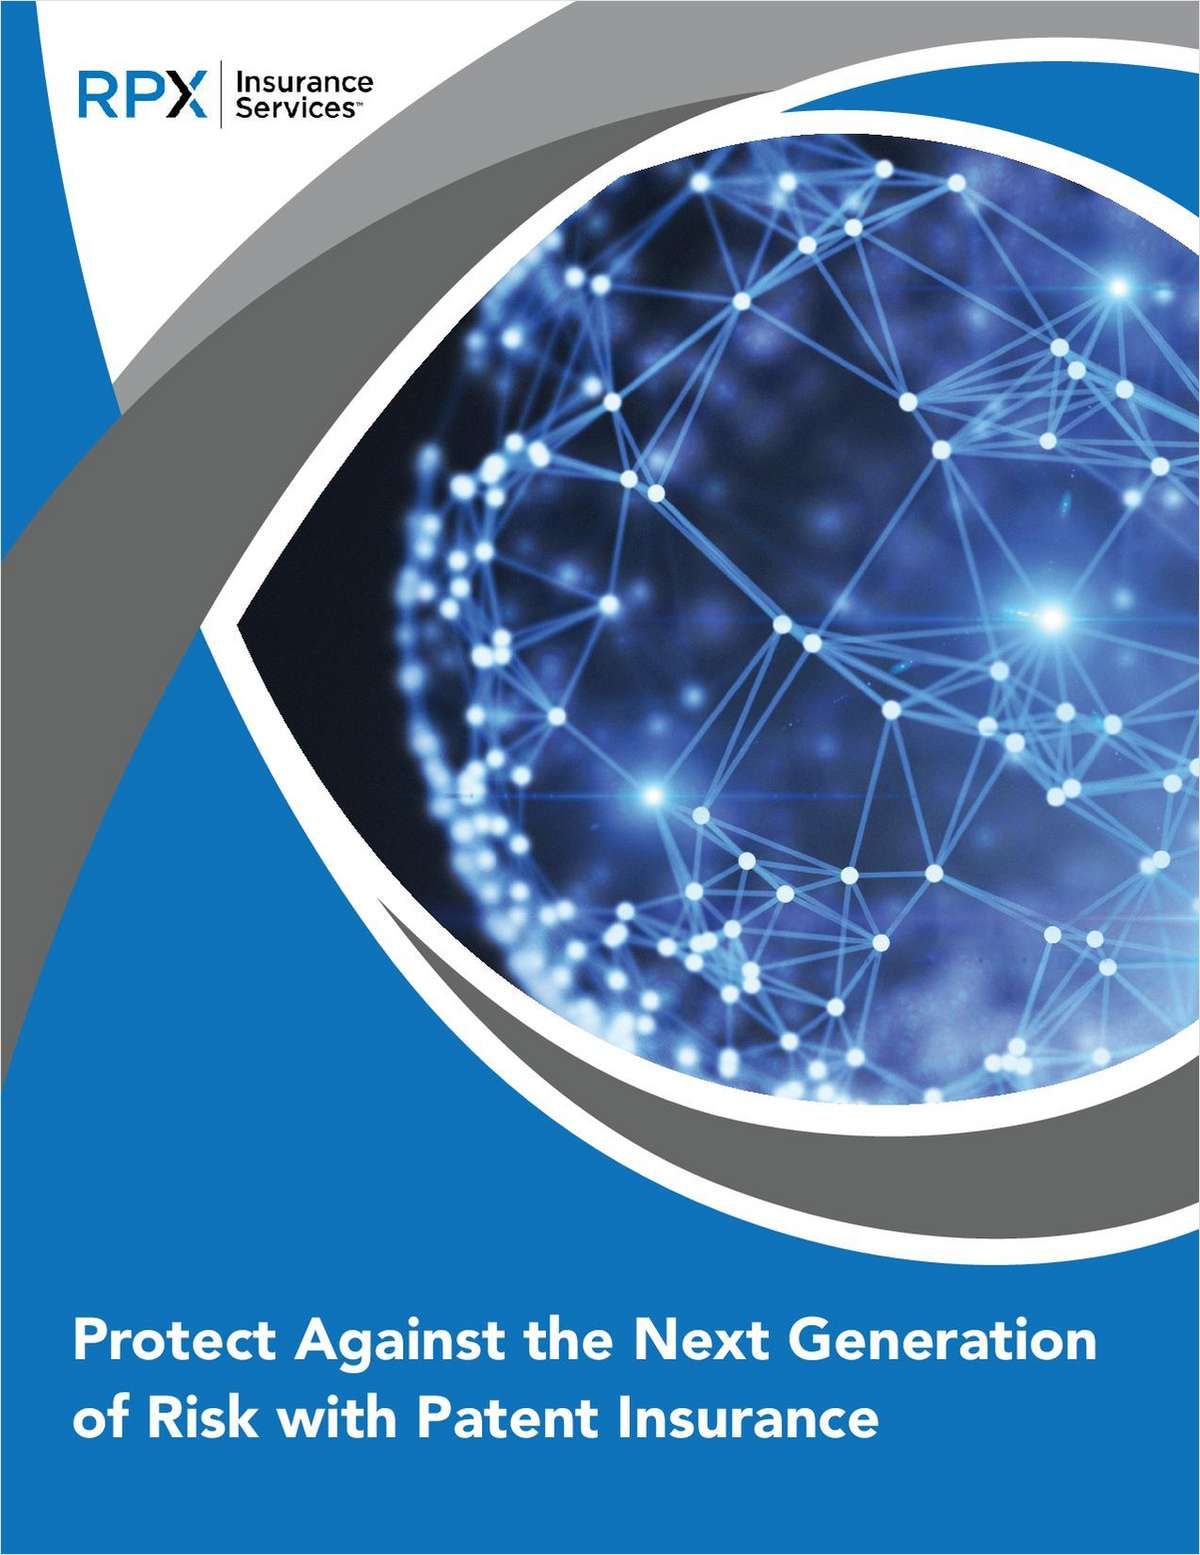 Protect Against the Next Generation of Risk with Patent Insurance